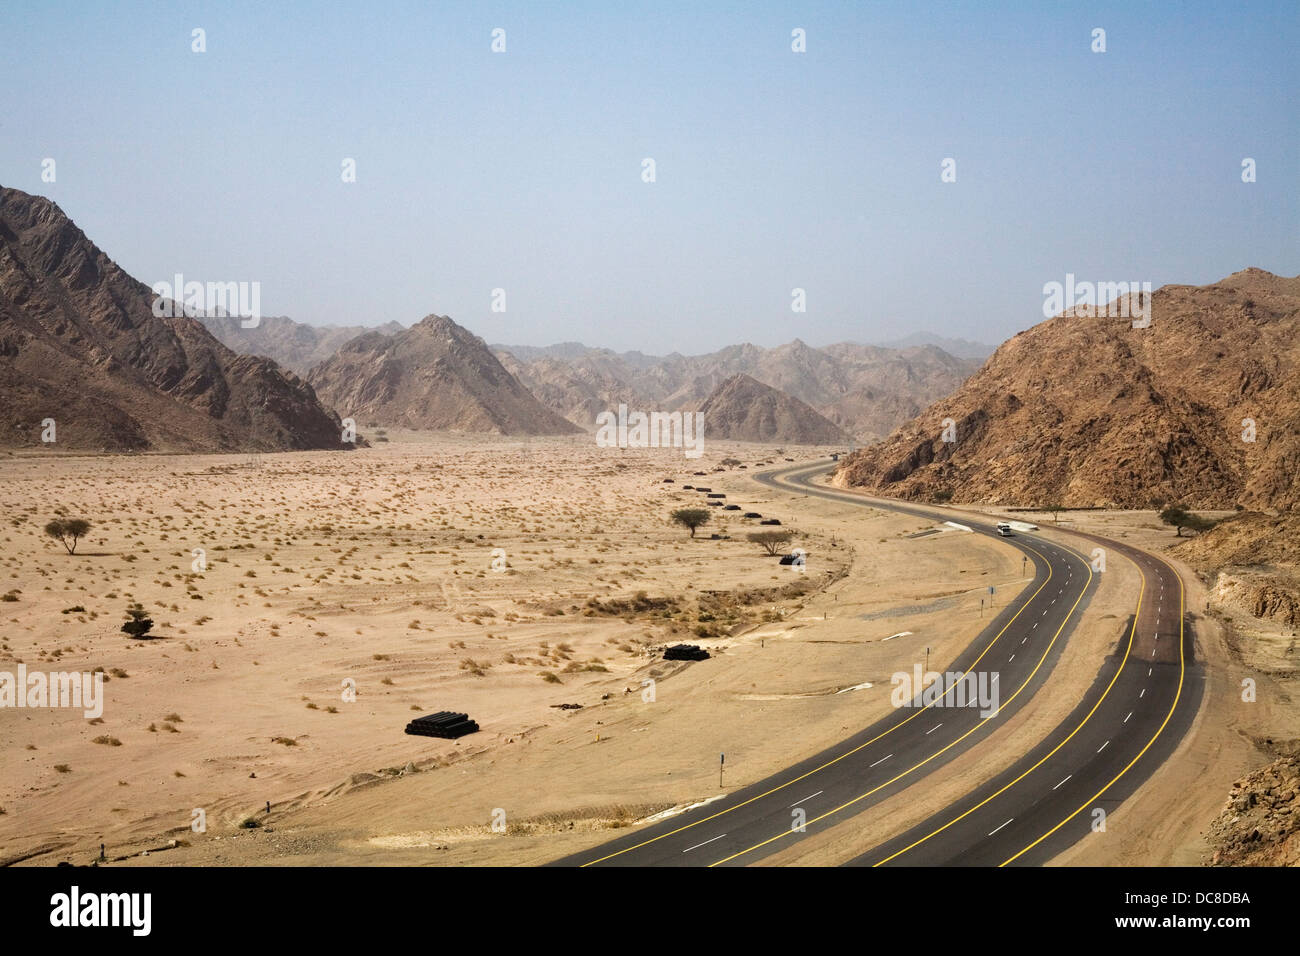 The Duba-Haql number 5 highway passing through the Sarawat Mountains in north west Saudi Arabia. - Stock Image